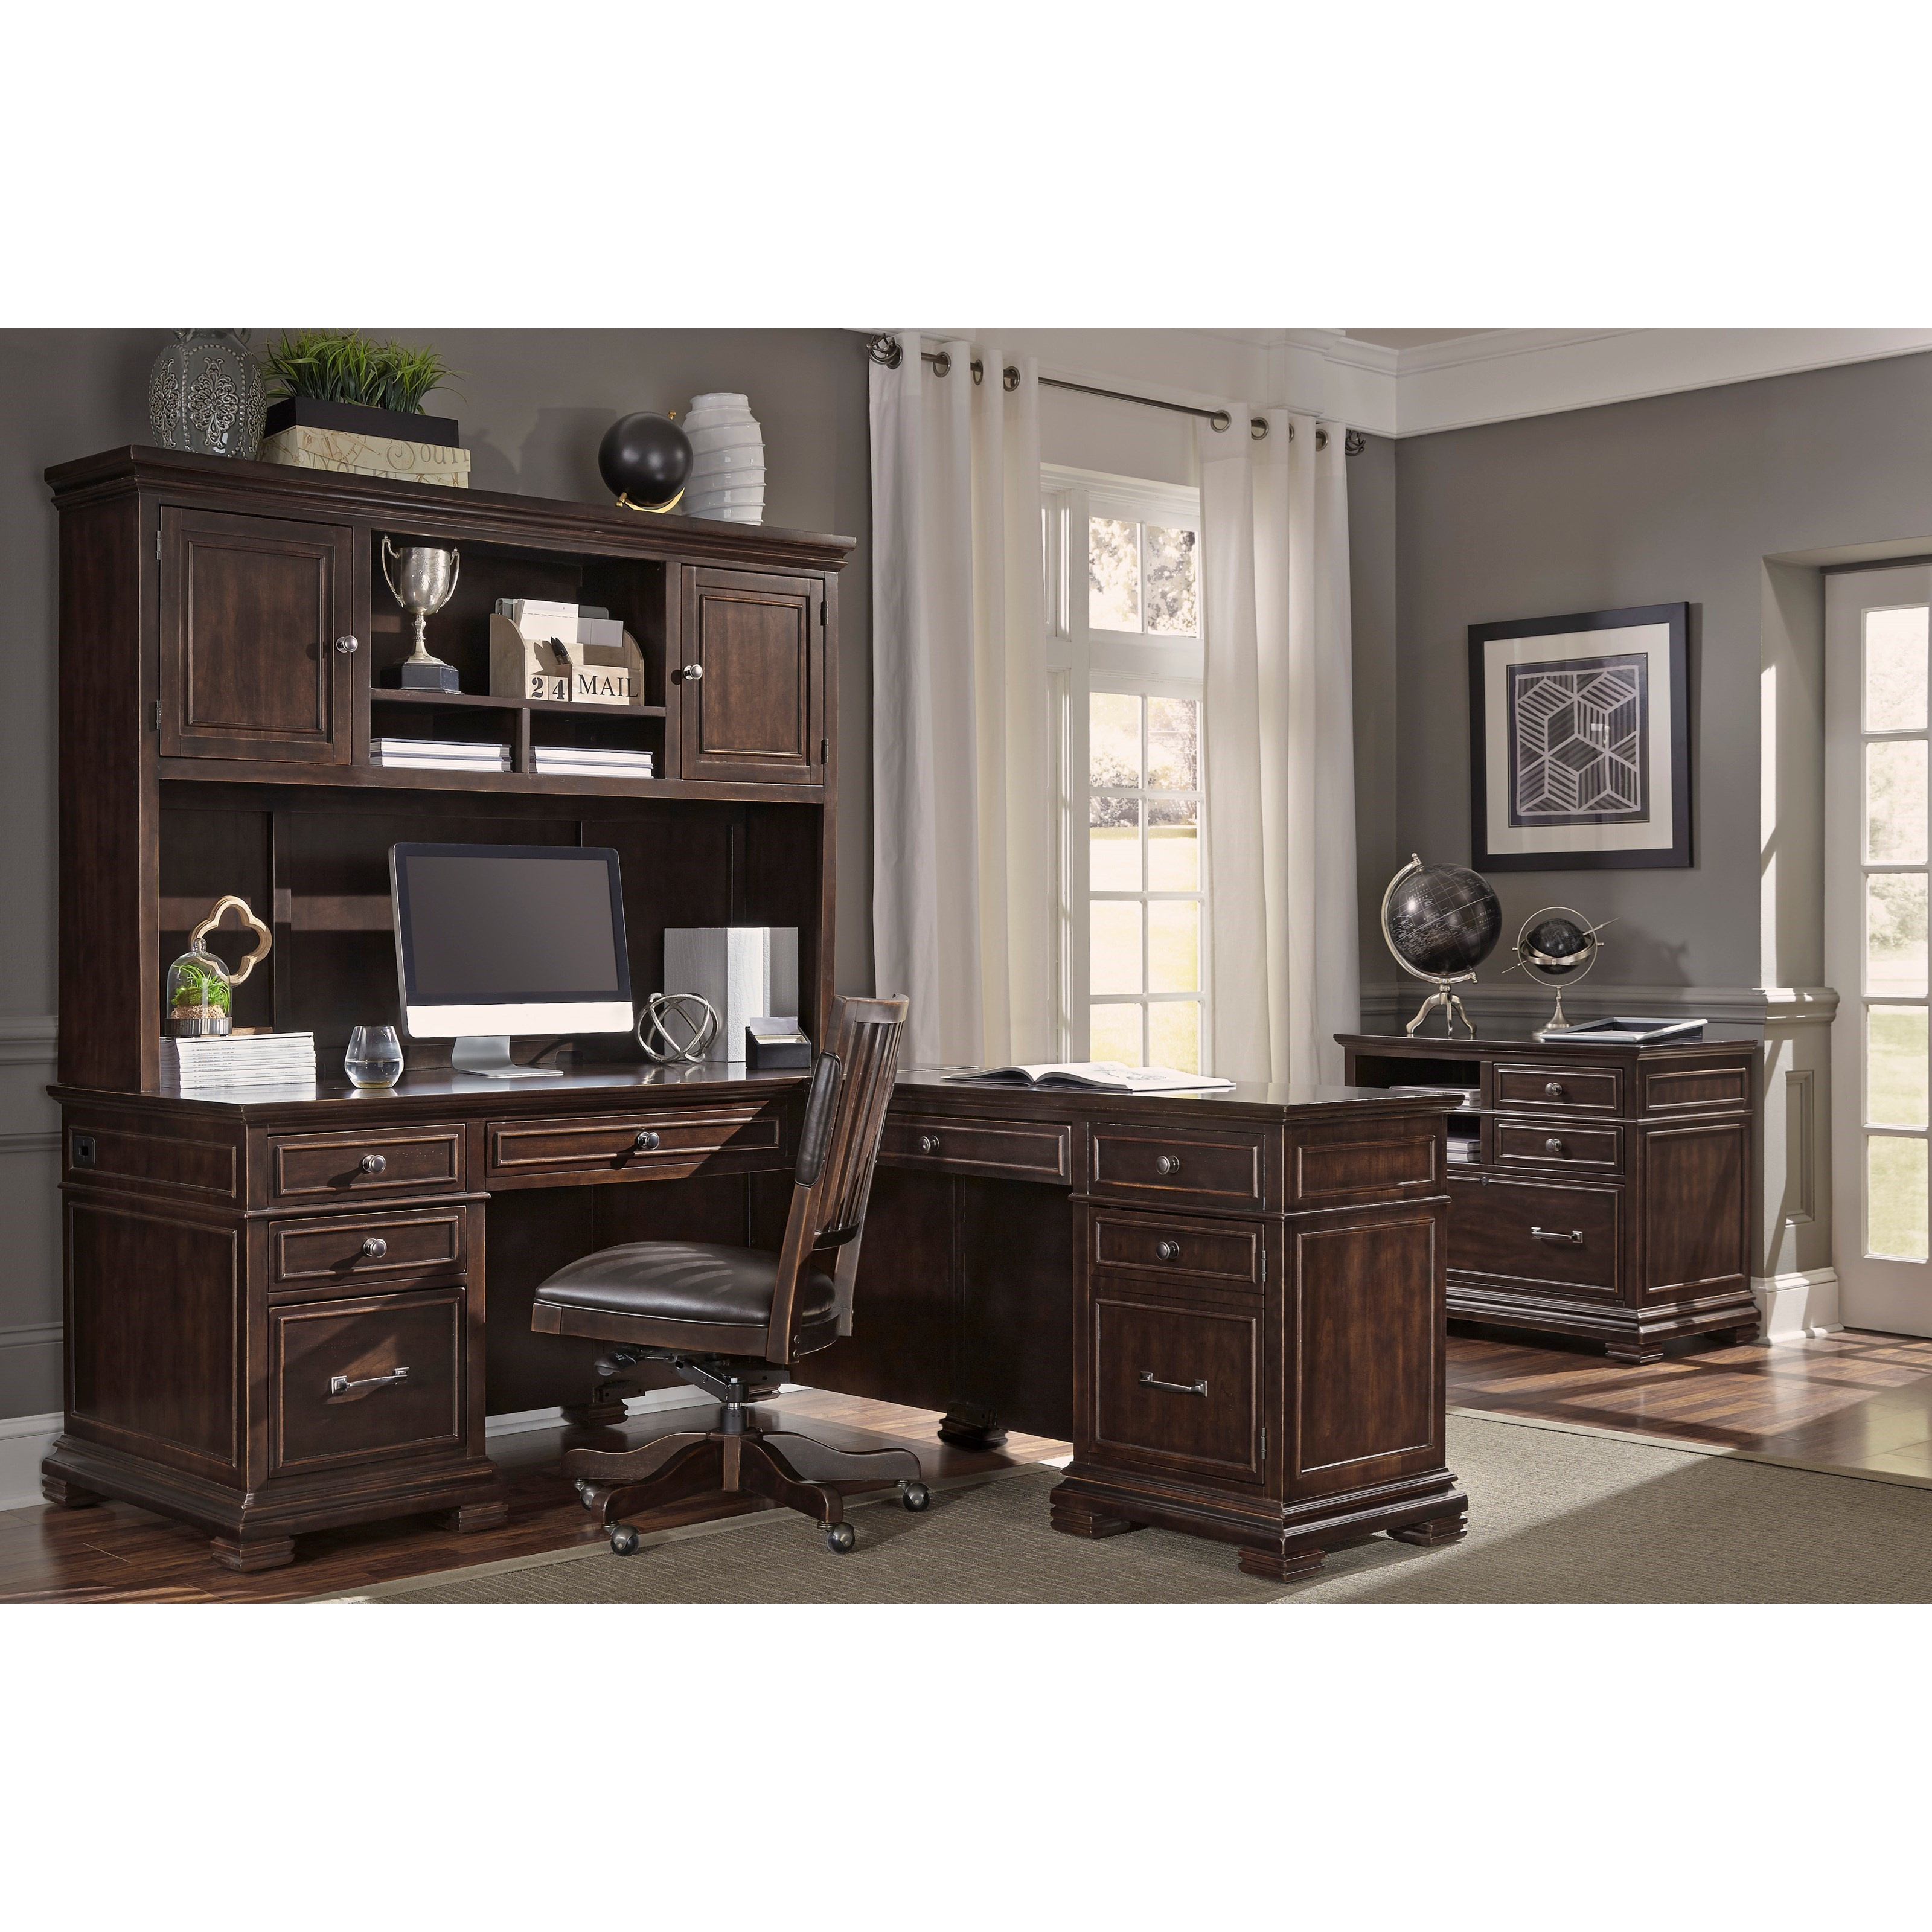 Aspenhome Weston L-Shaped Desk With Hutch And Built-in